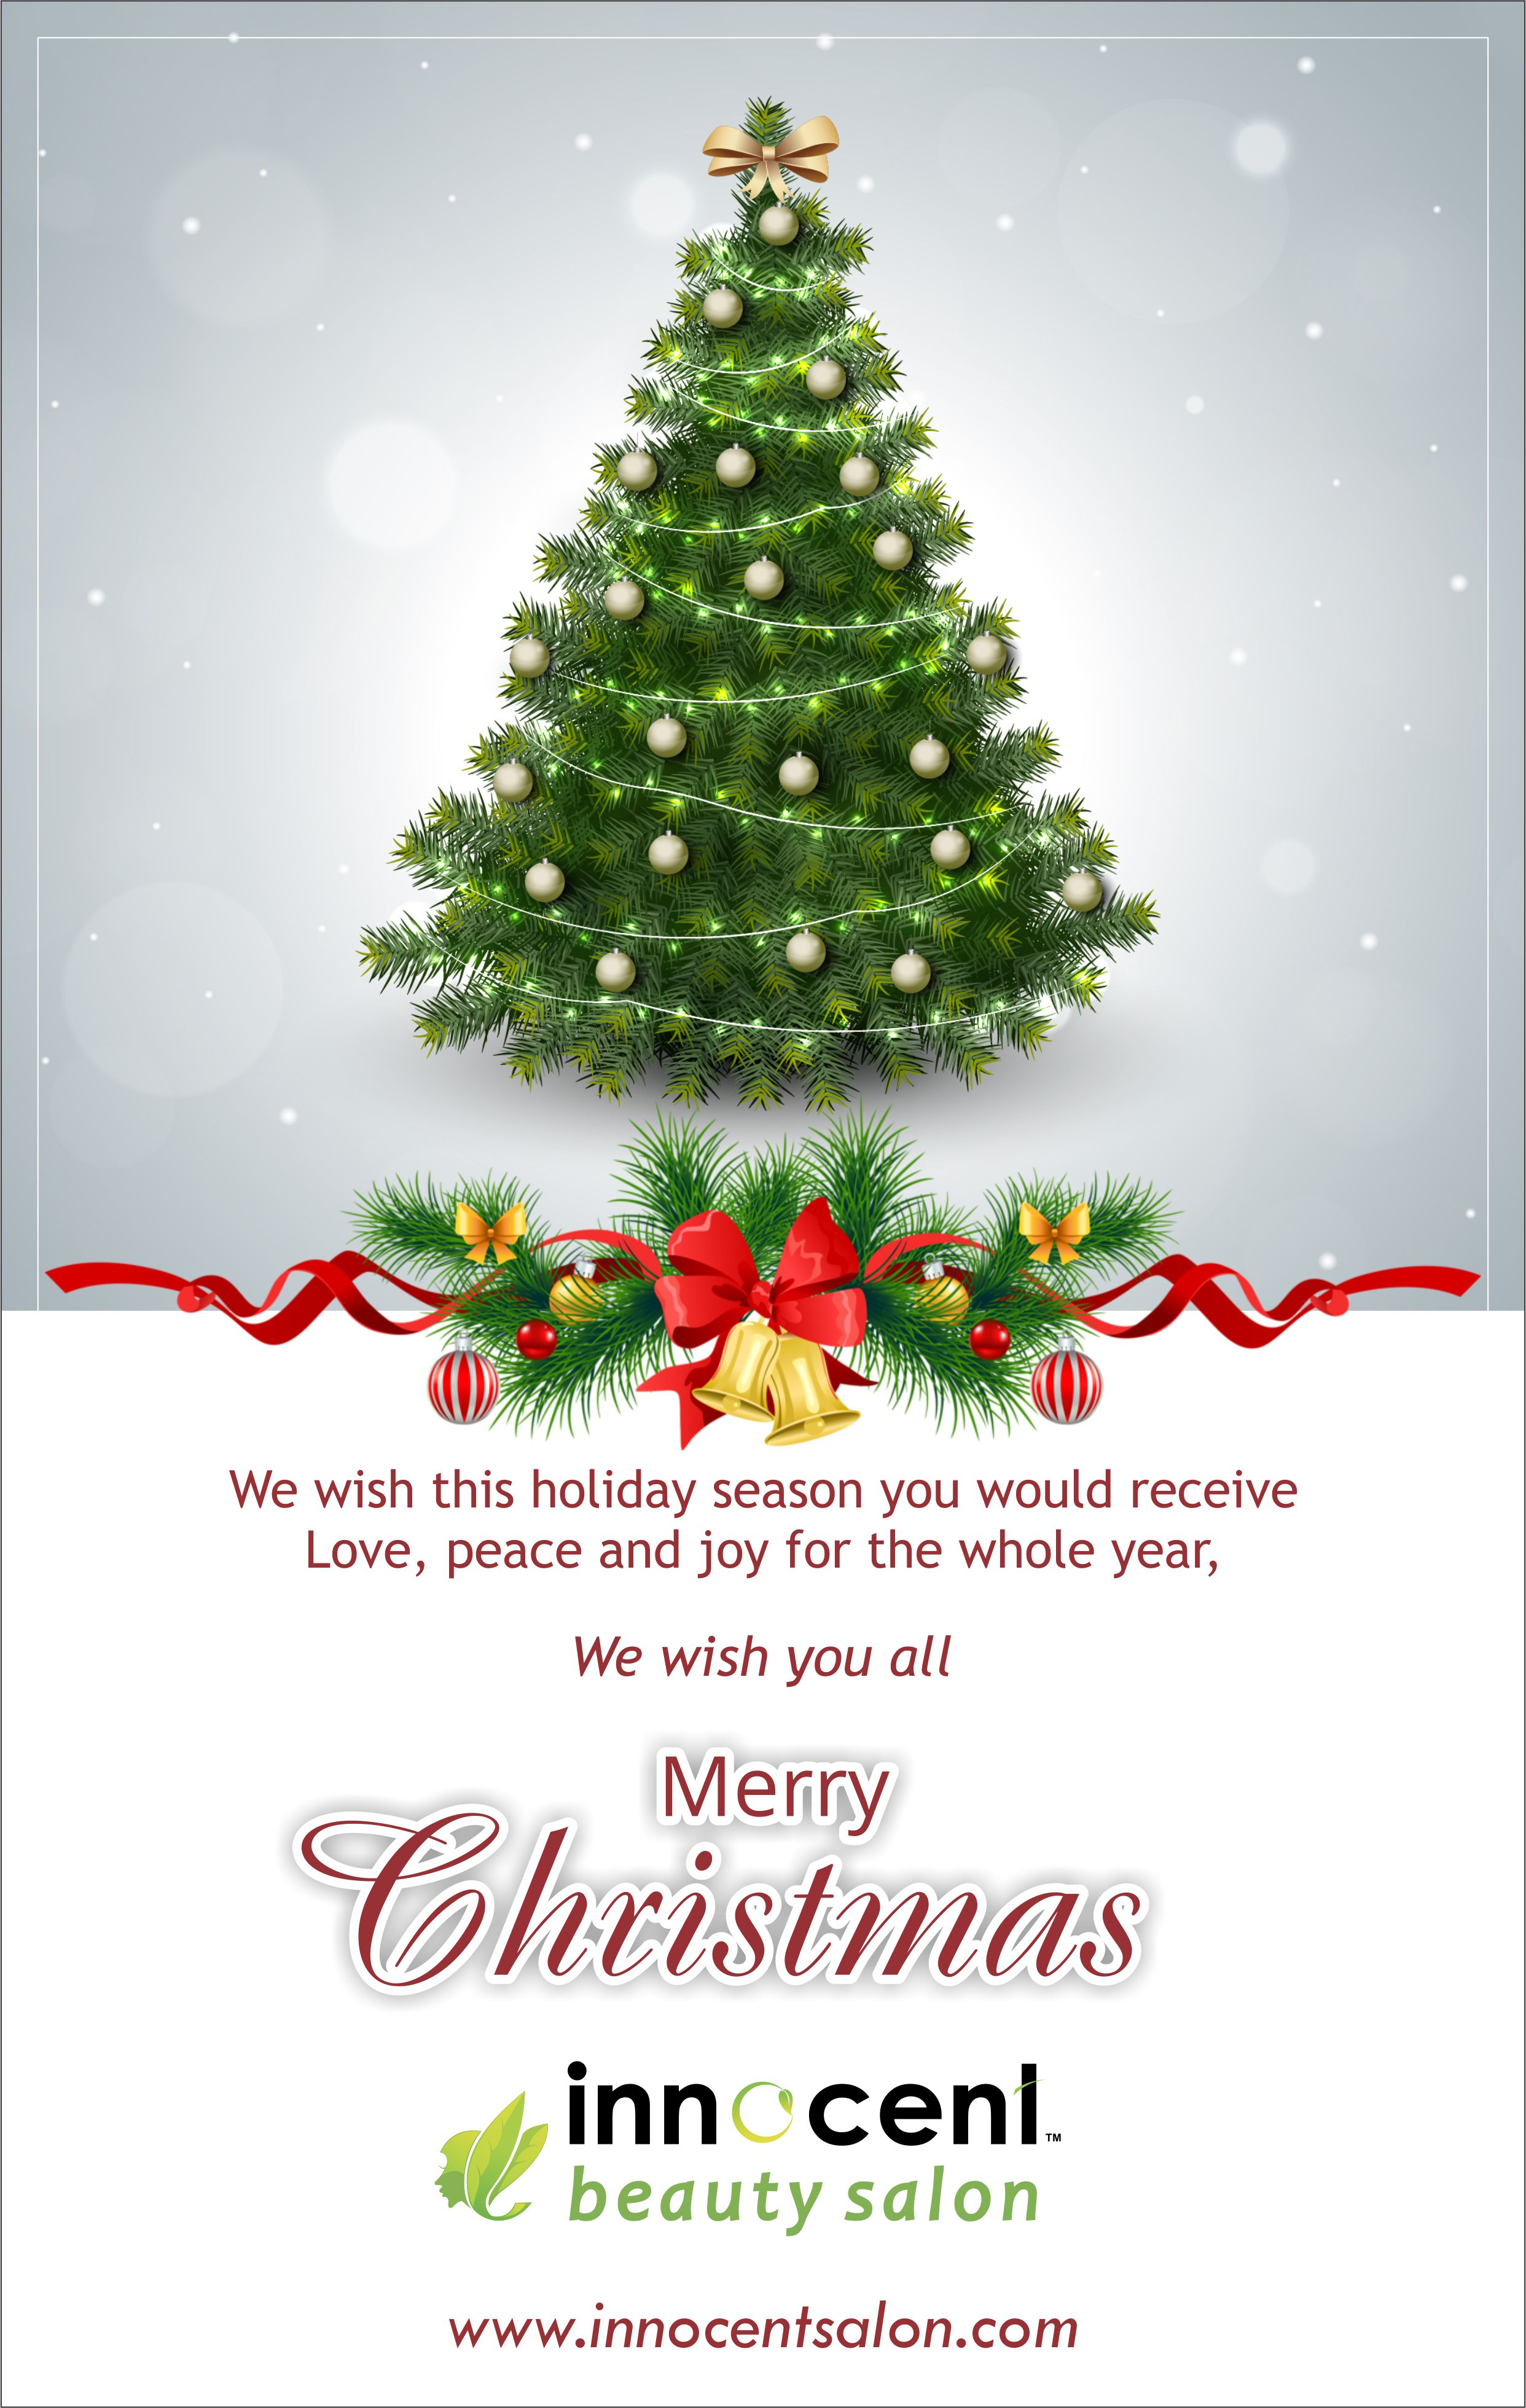 Christmas Beauty Salon.Christmas Is The Spirit Of Giving Without A T Innocent